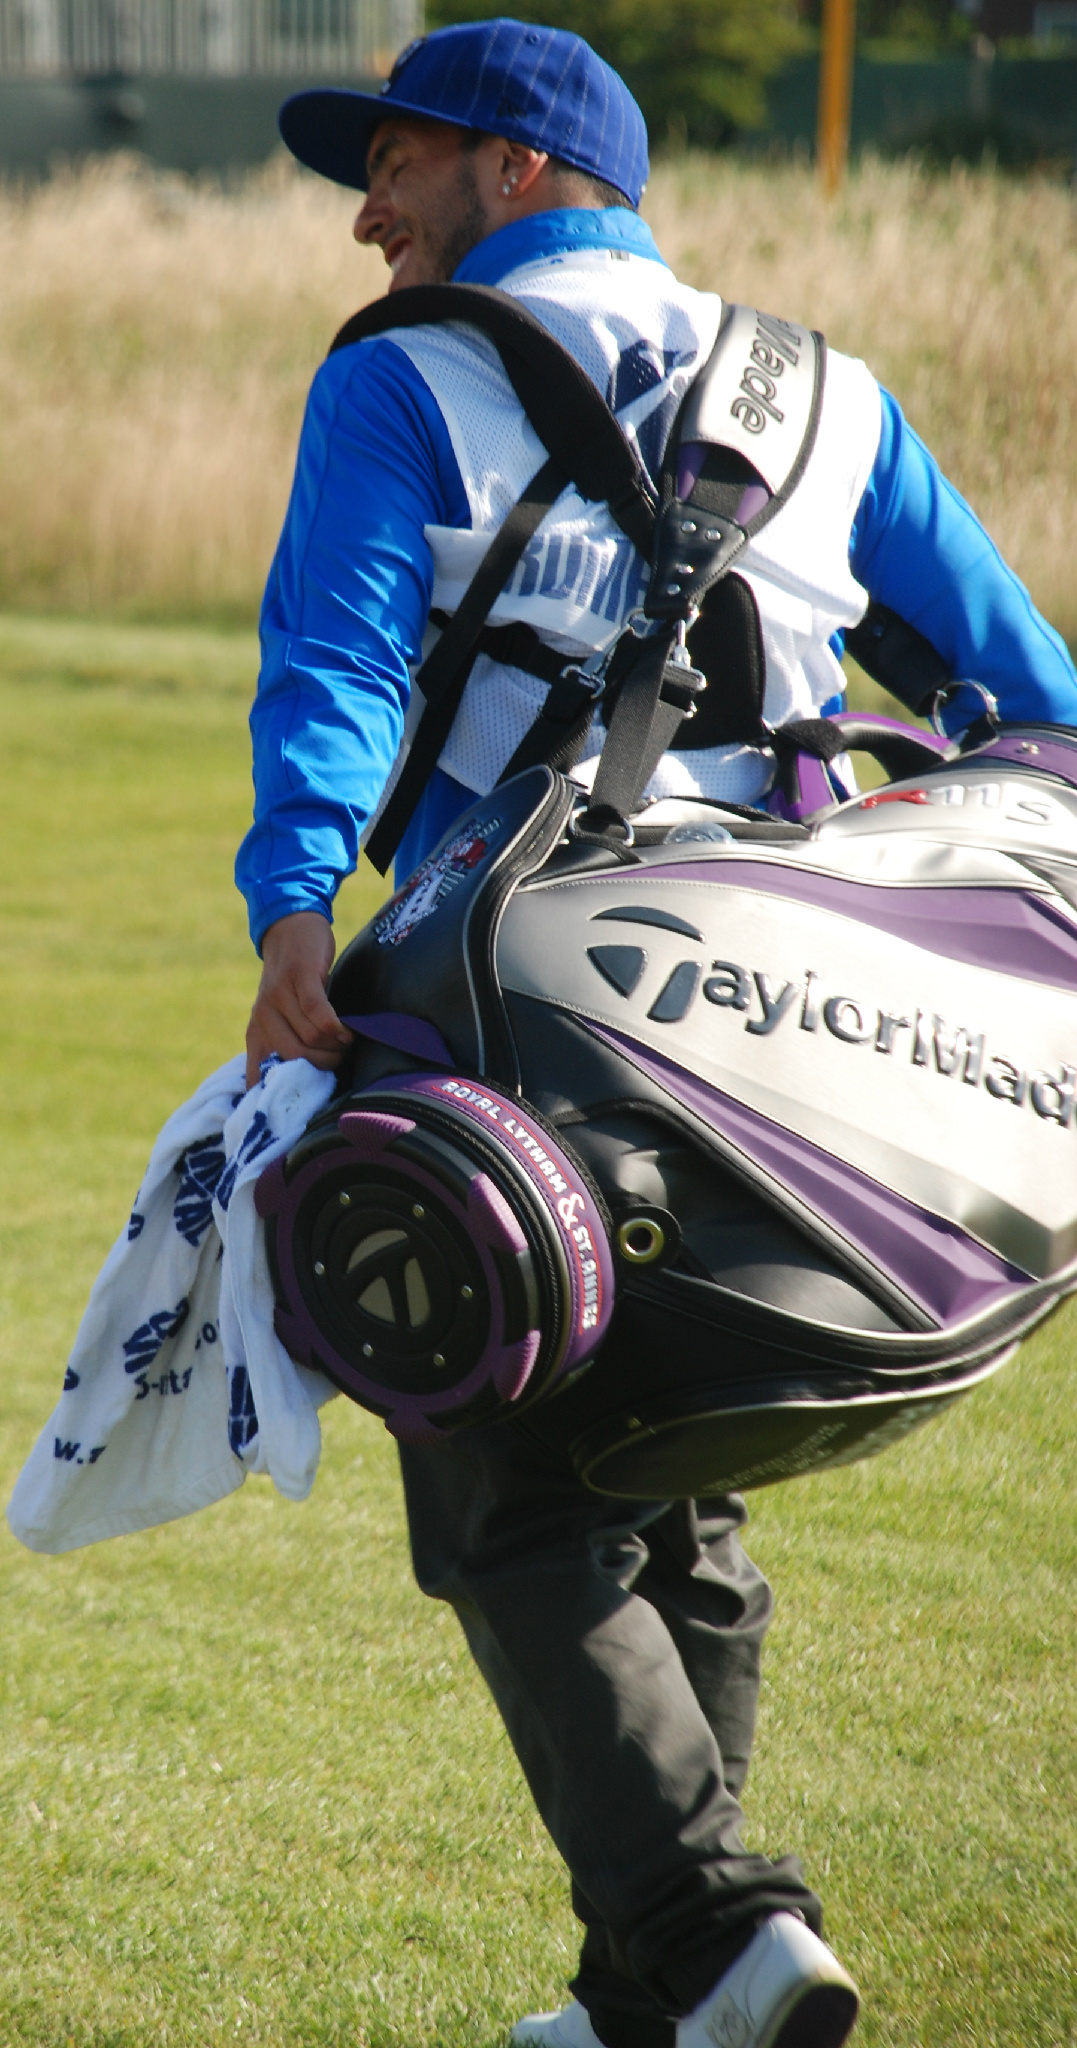 The rumours are true! Carlos Tevez is caddying for Andres Romero. #TheOpen http://t.co/Da6mCBXr